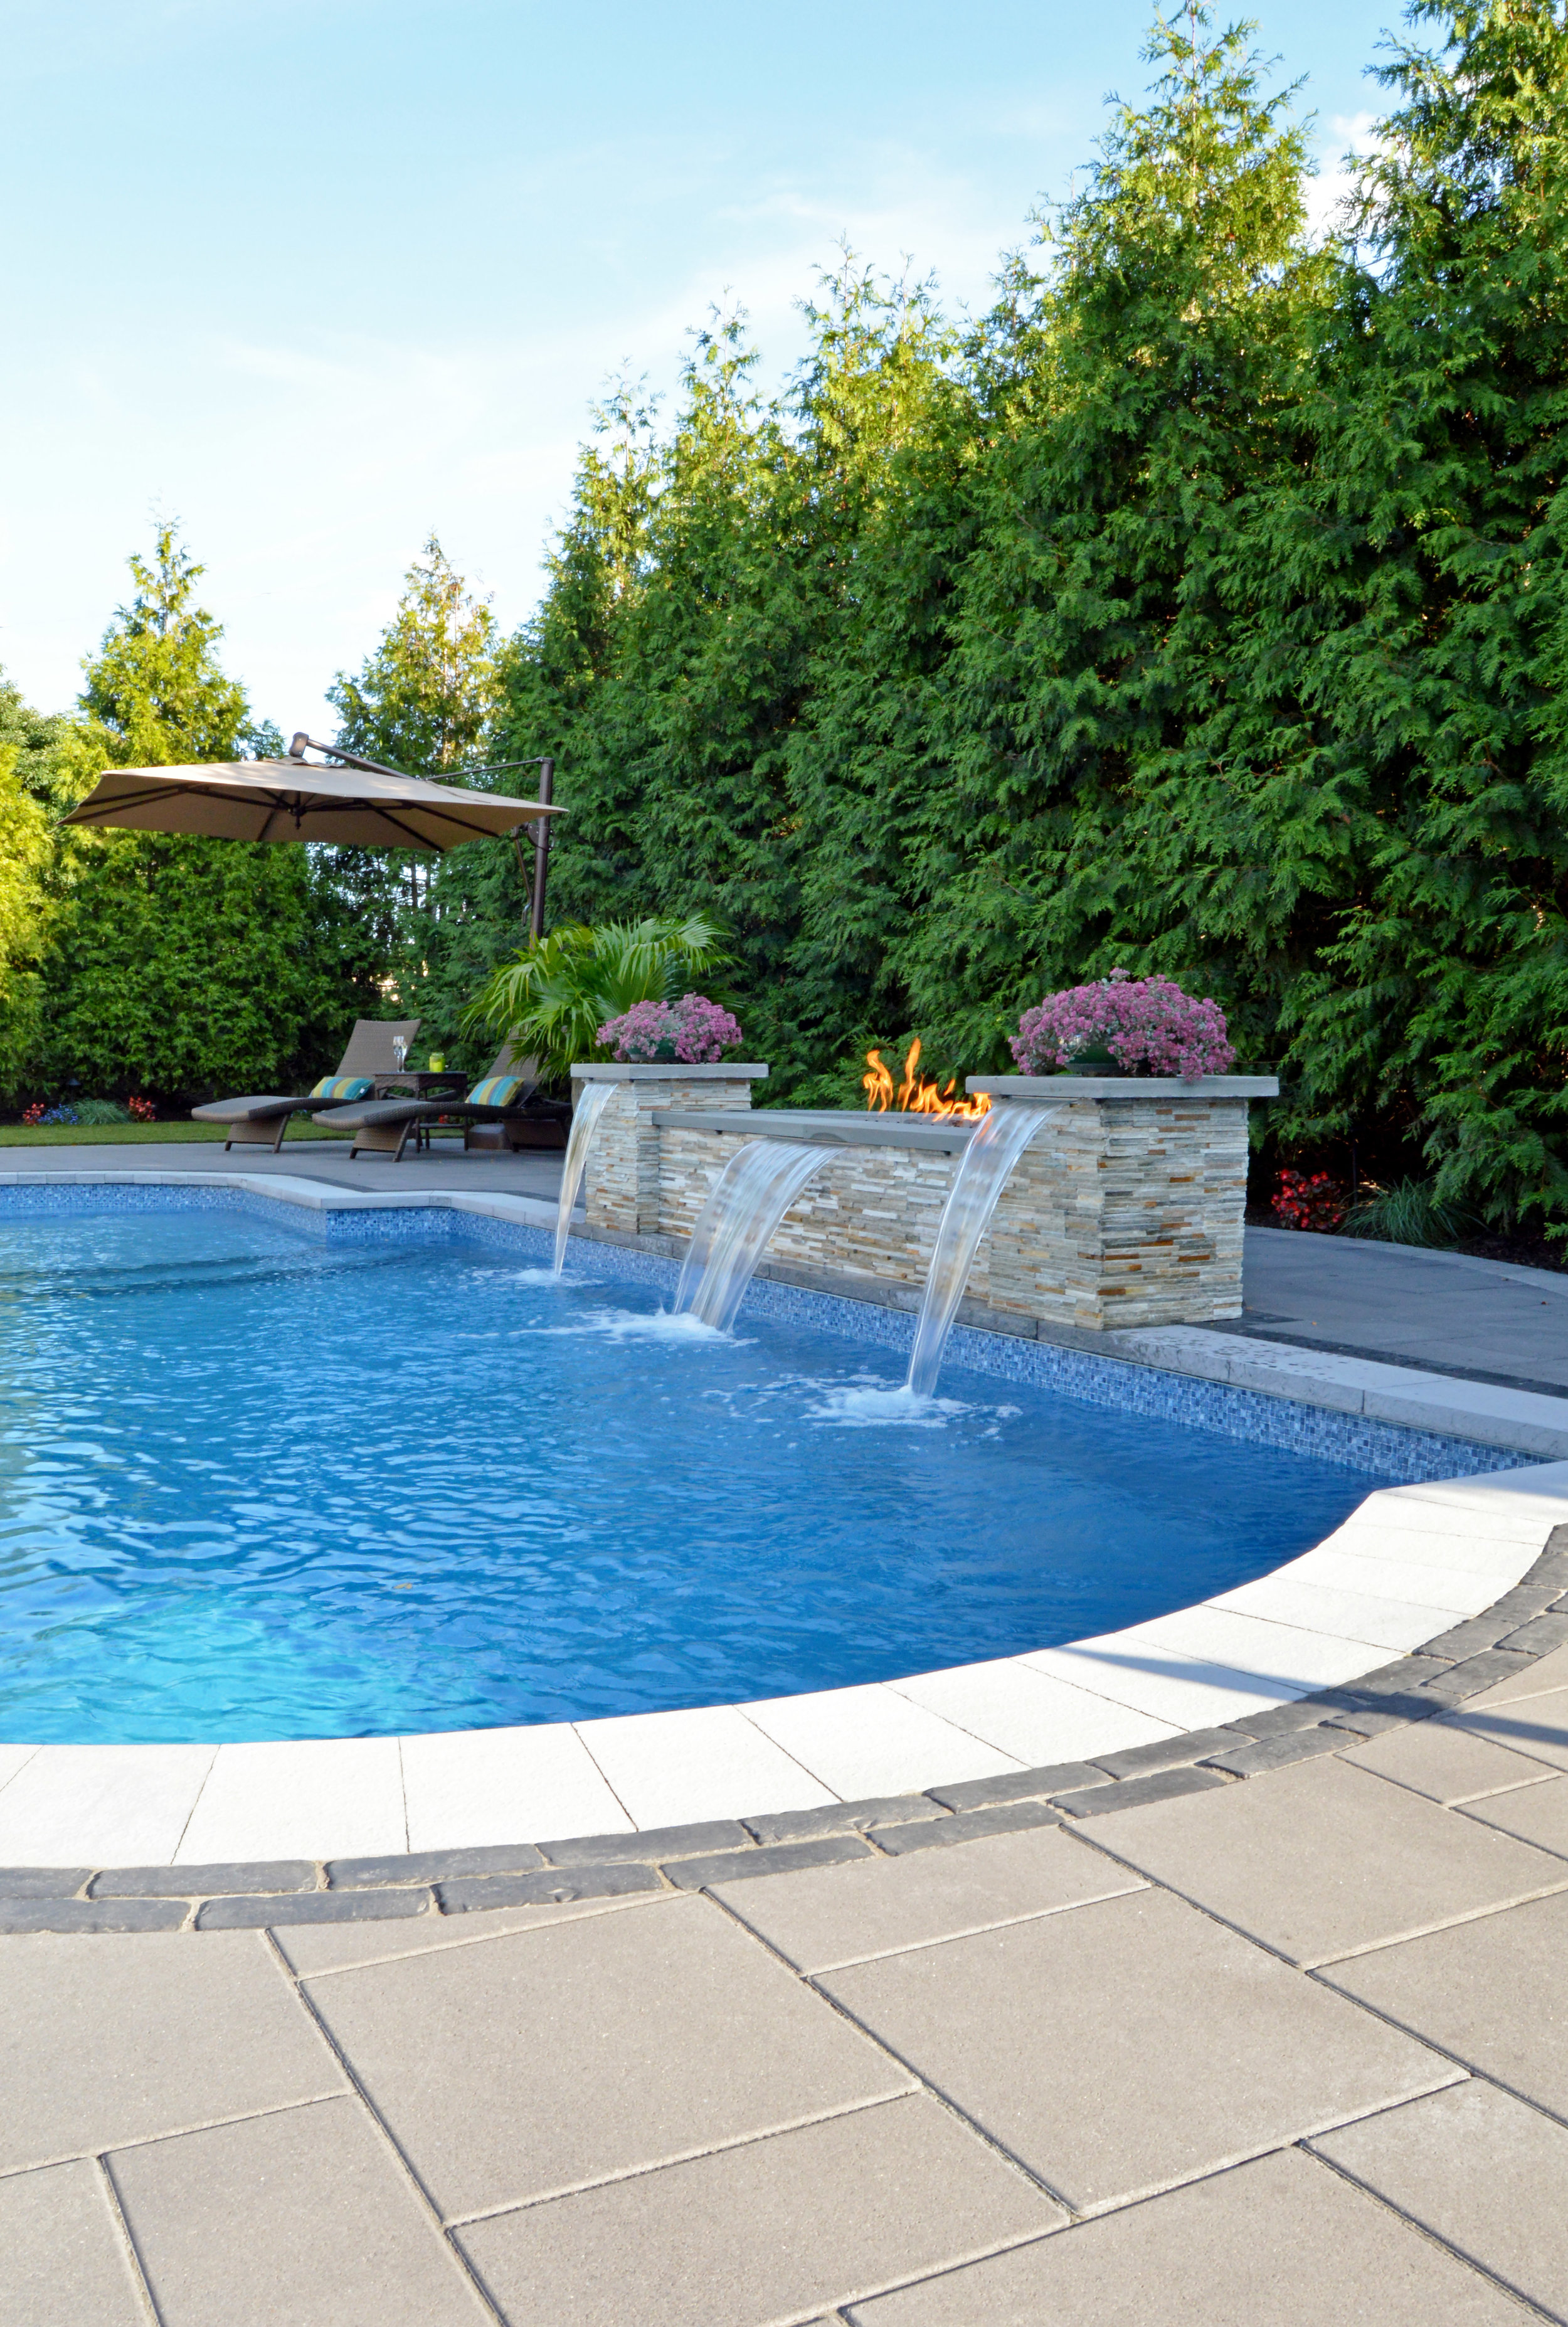 hicksville, NY fire feature, swimming pool, and patio